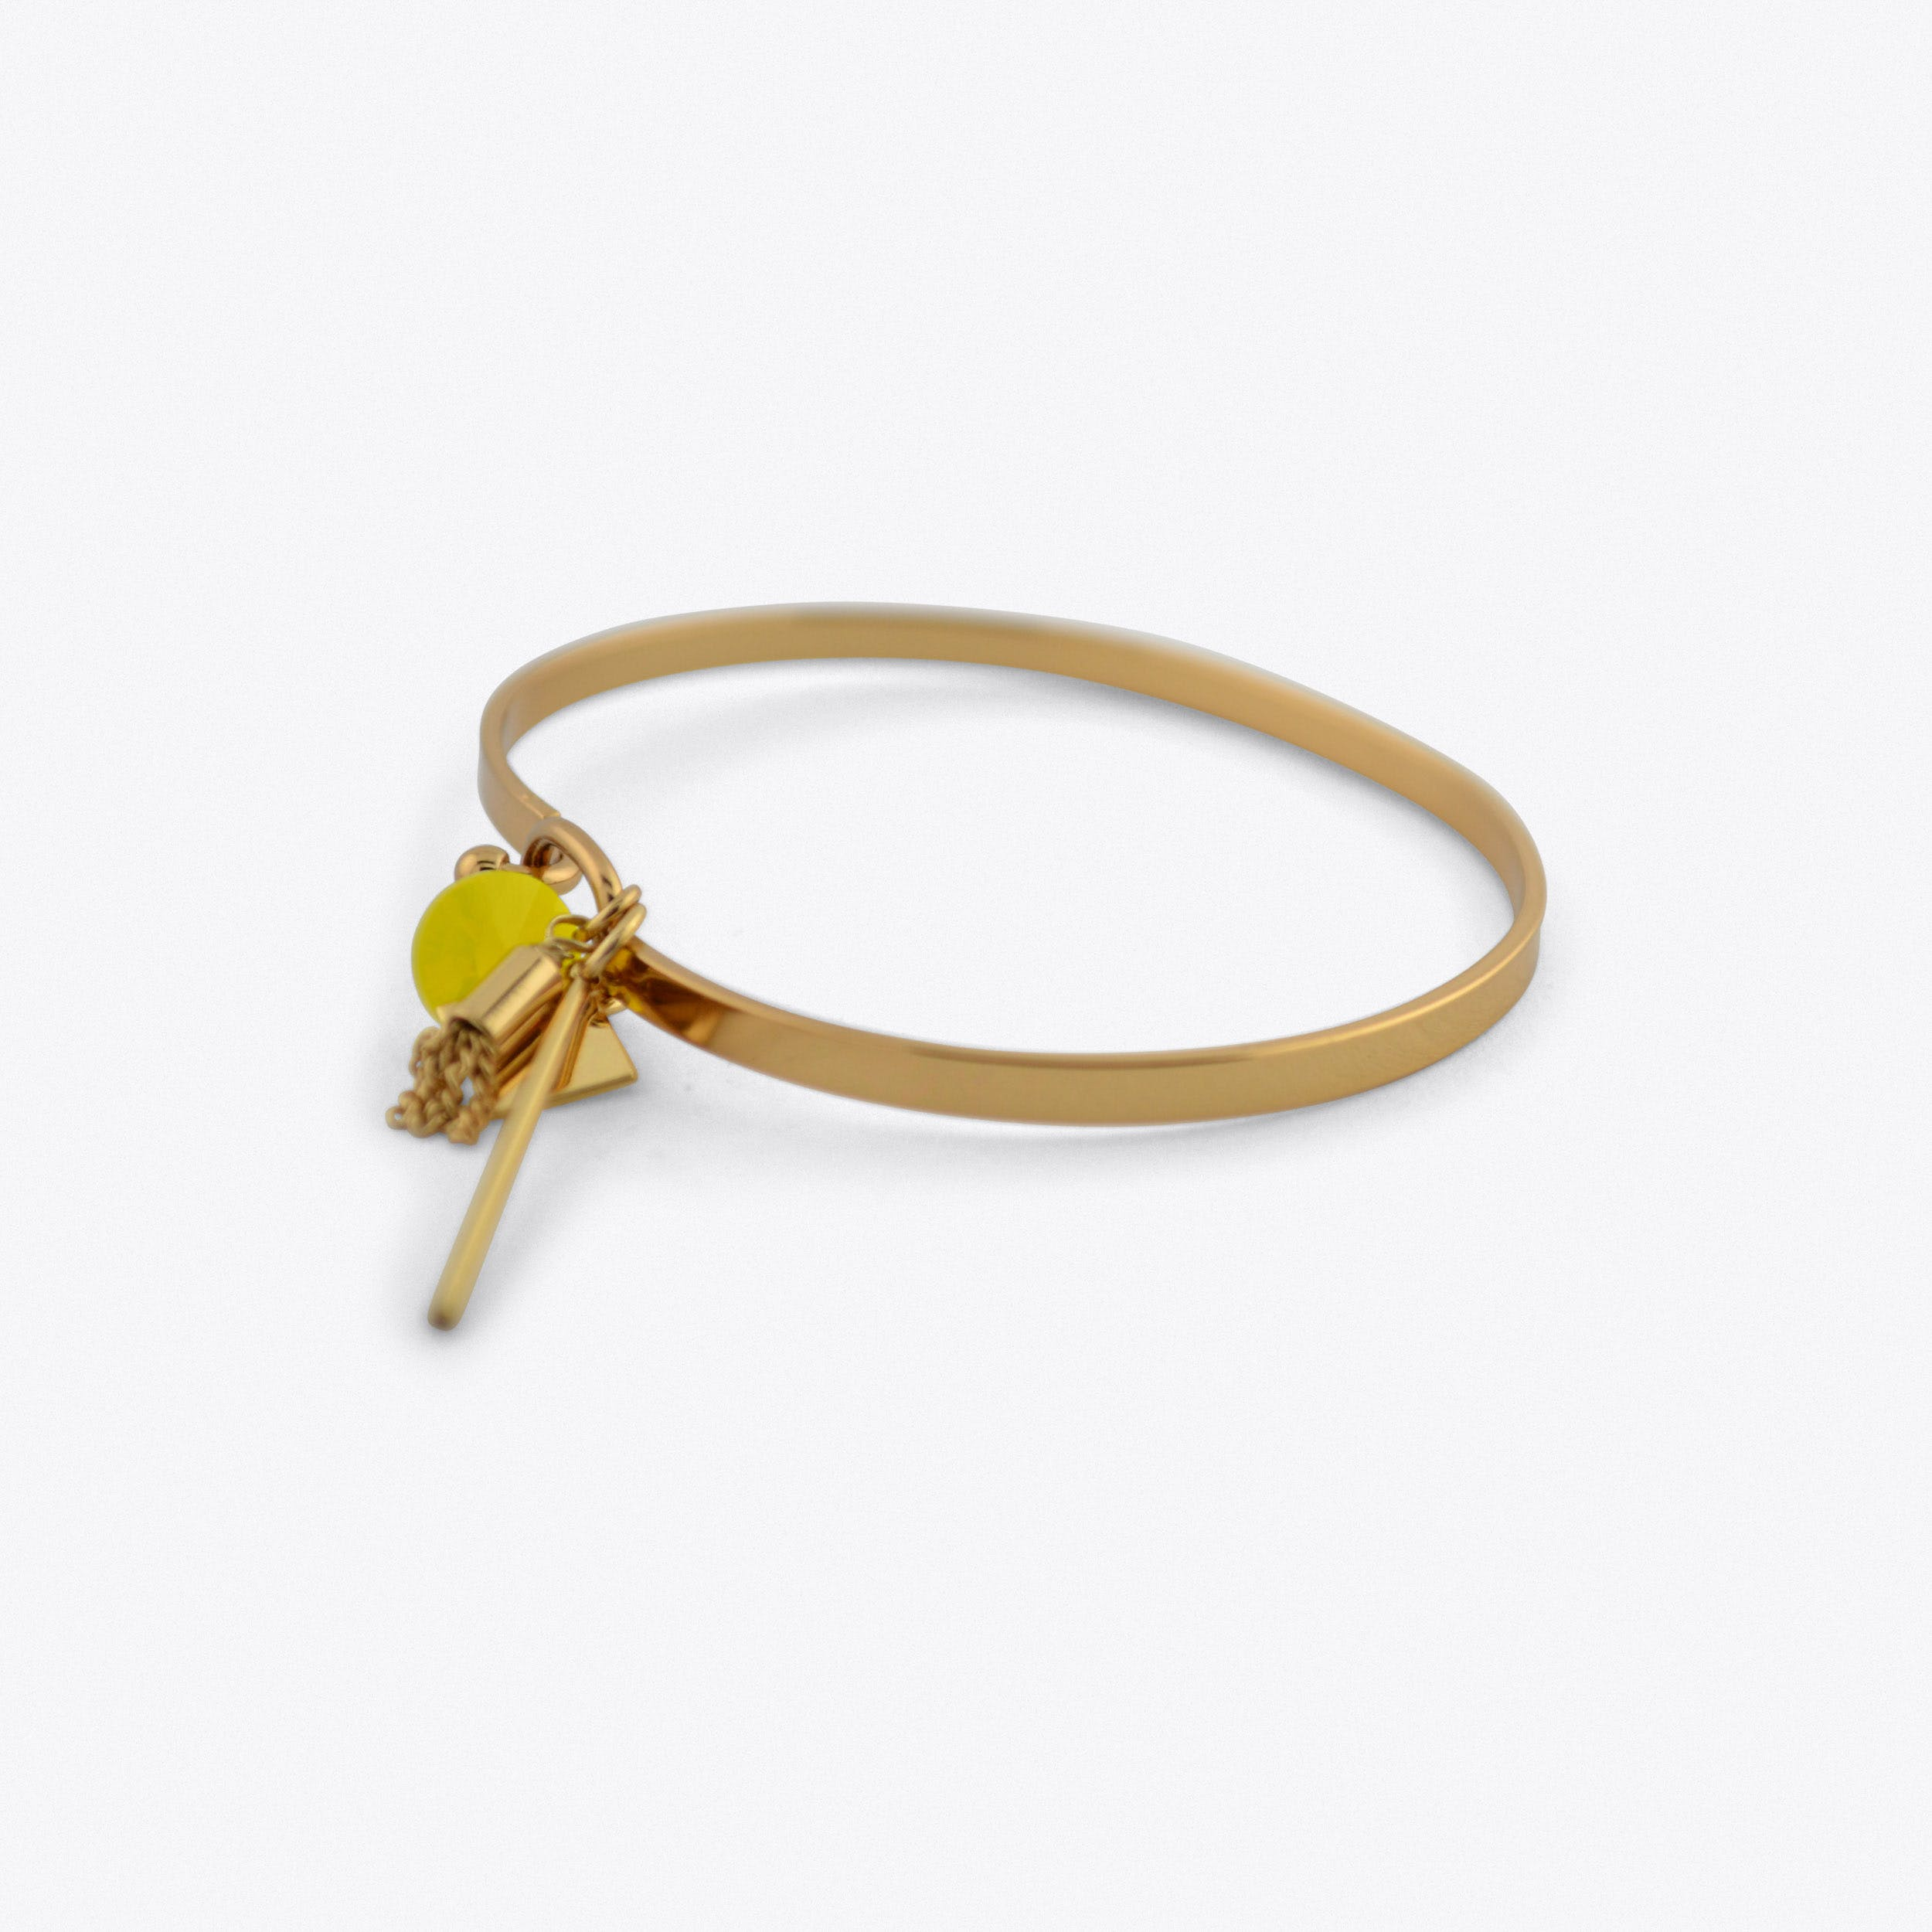 Solid Cluster Bangle In Gold With Yellow Stone